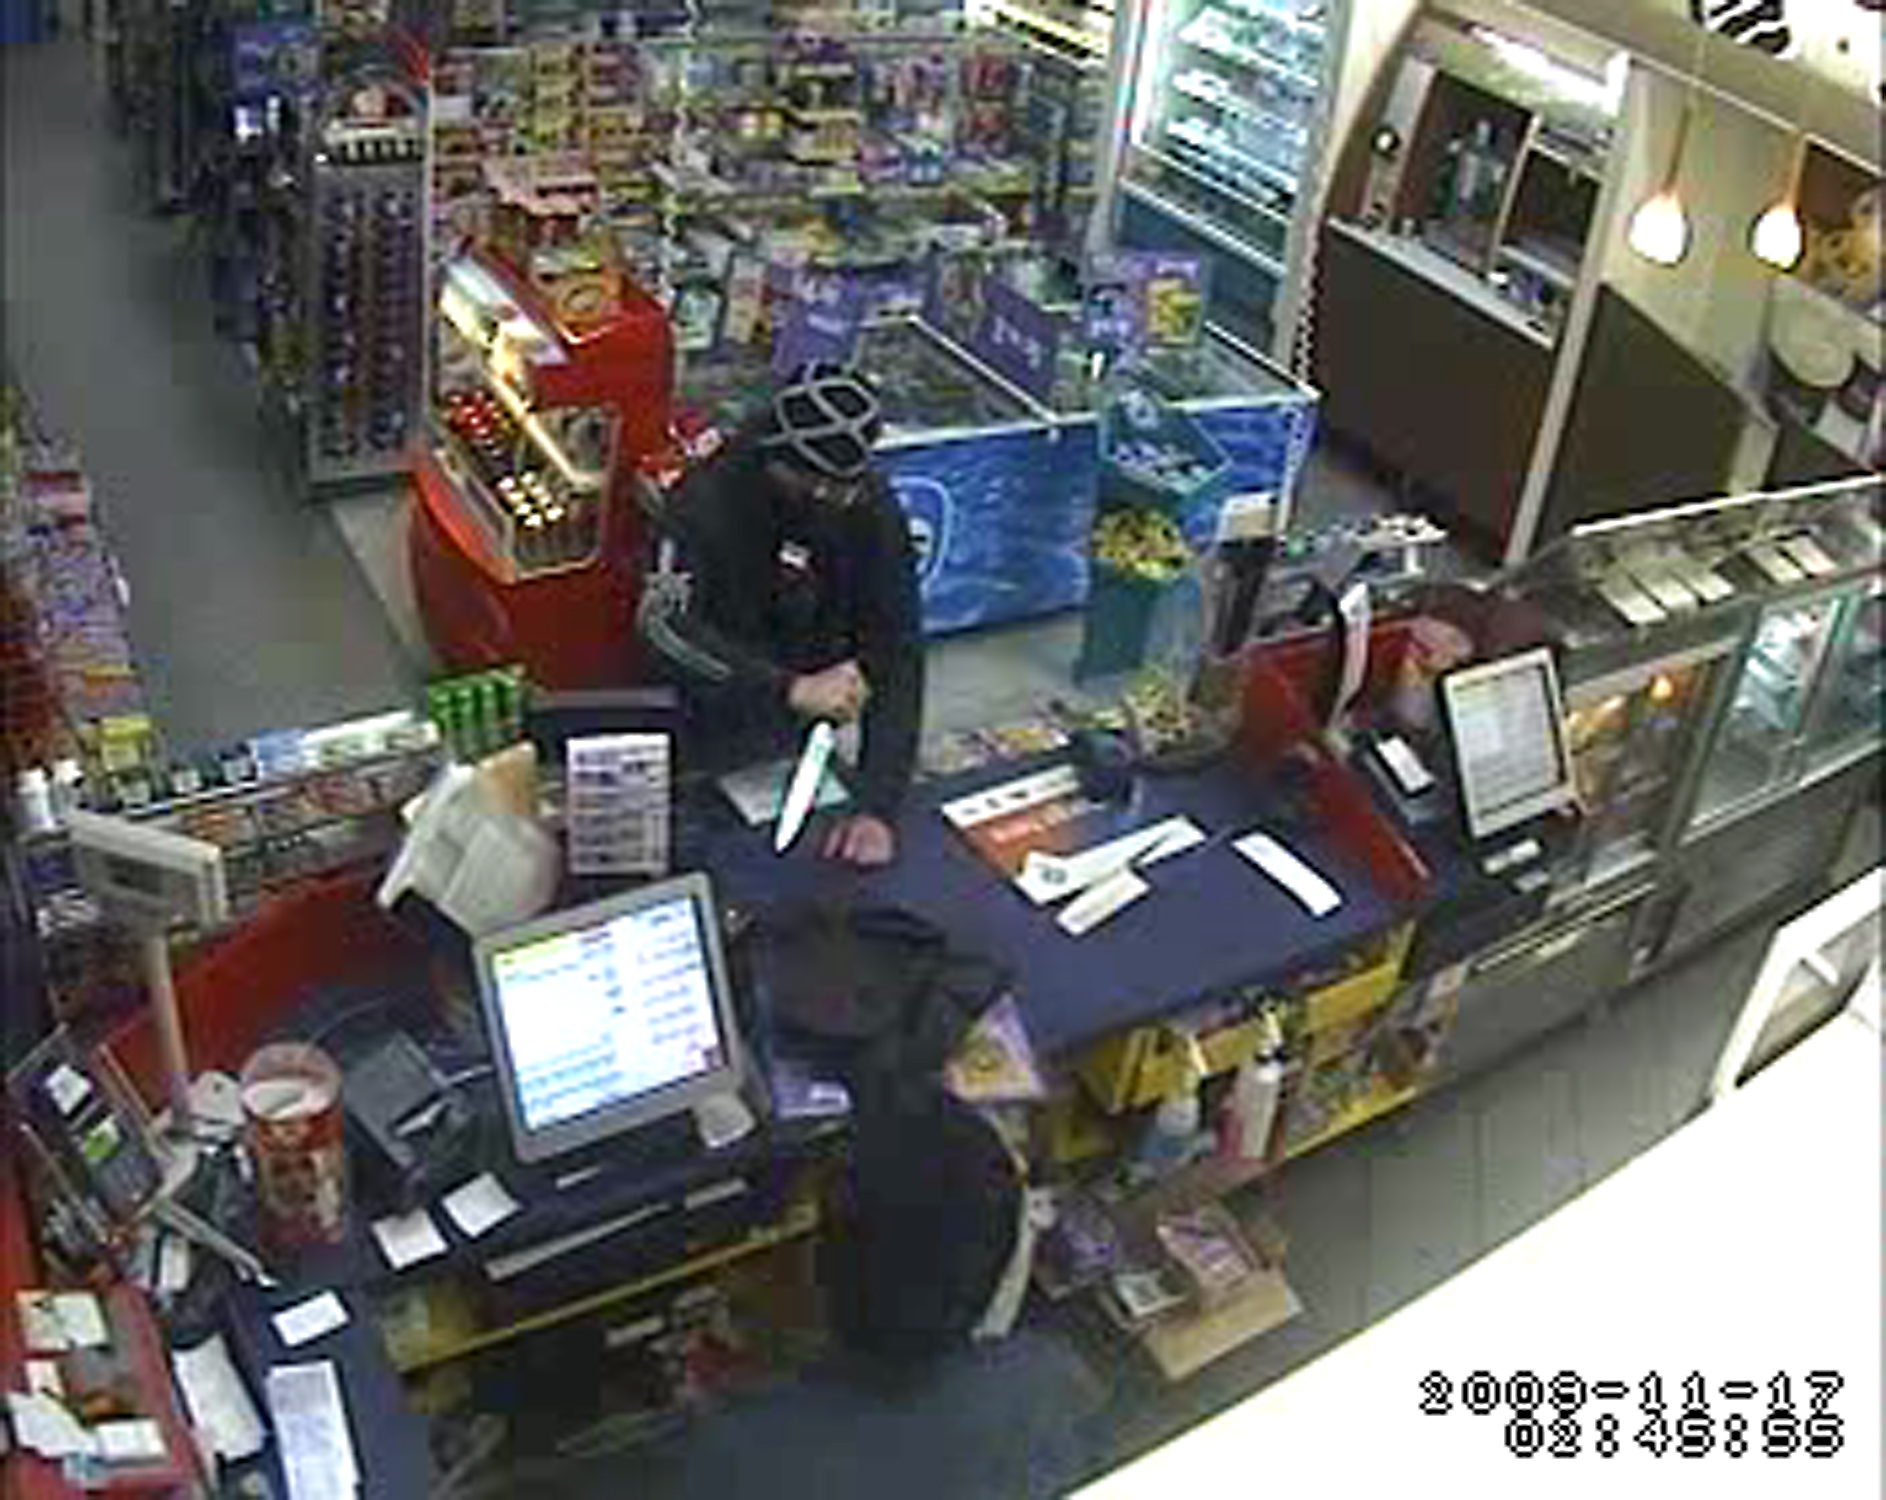 A still taken from CCTV footage of the Caltex service station aggravated robbery in Braddon (1 of 2)